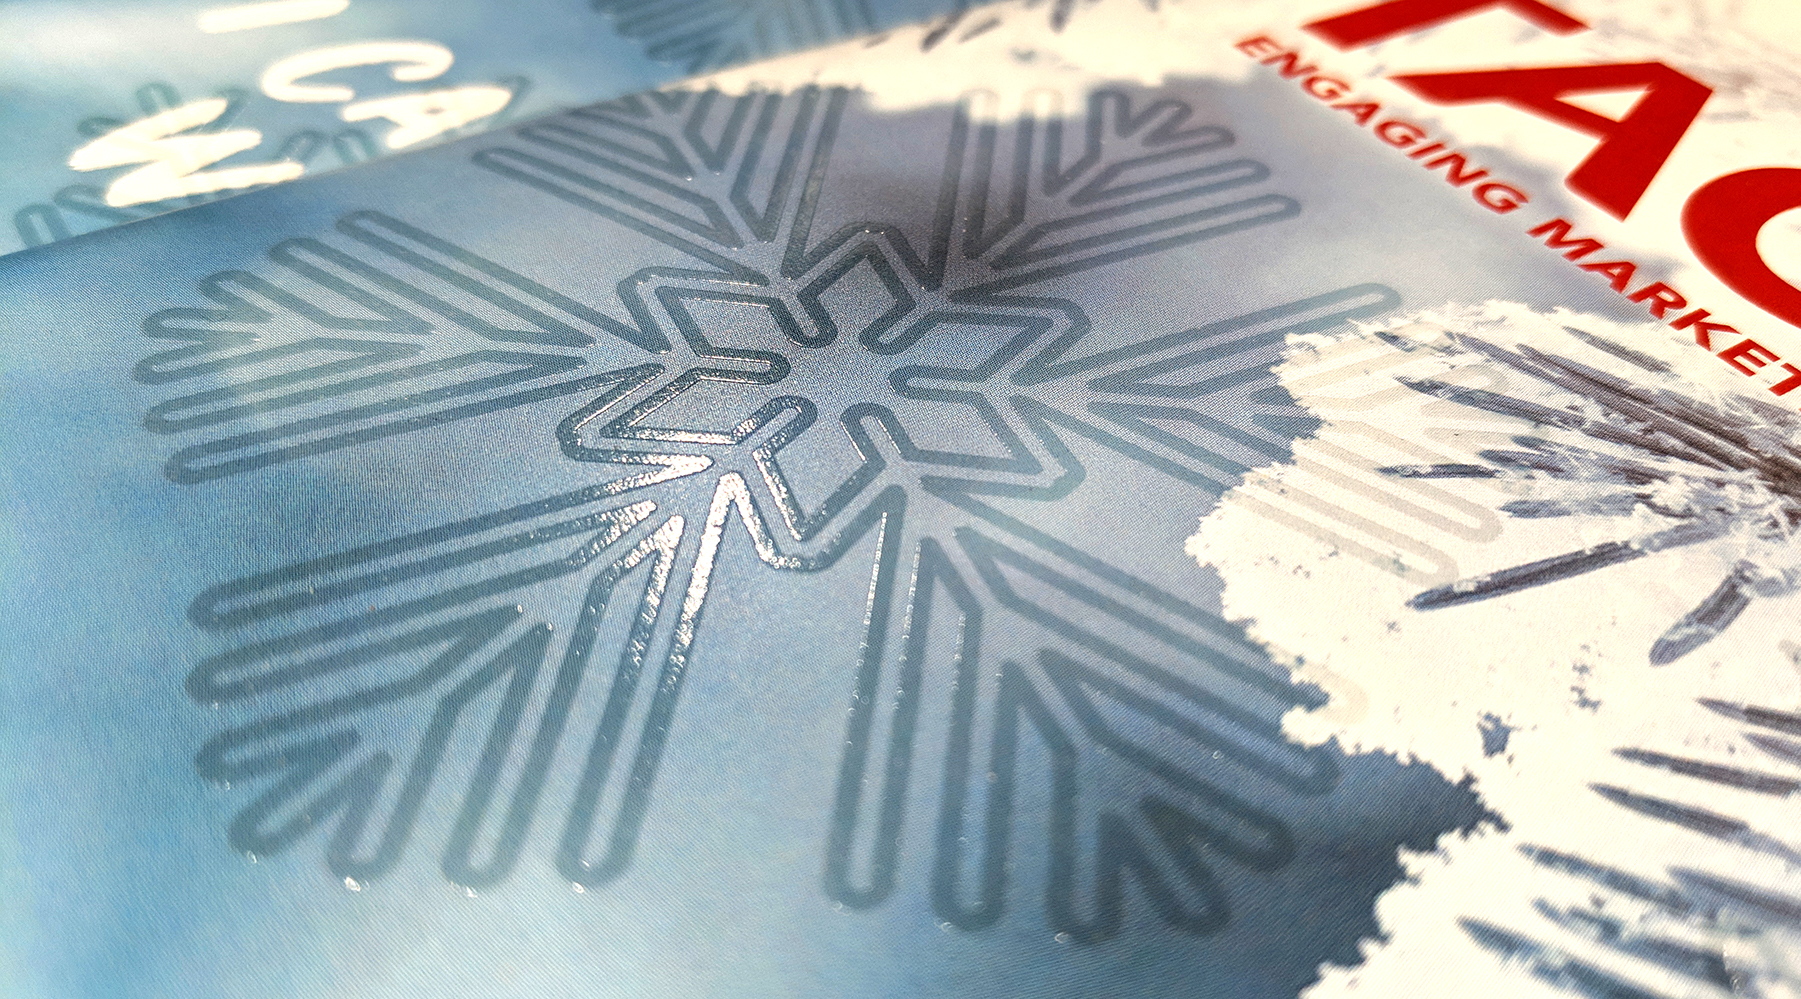 Raised print applied to snowflake on cover of Tactics Magazine